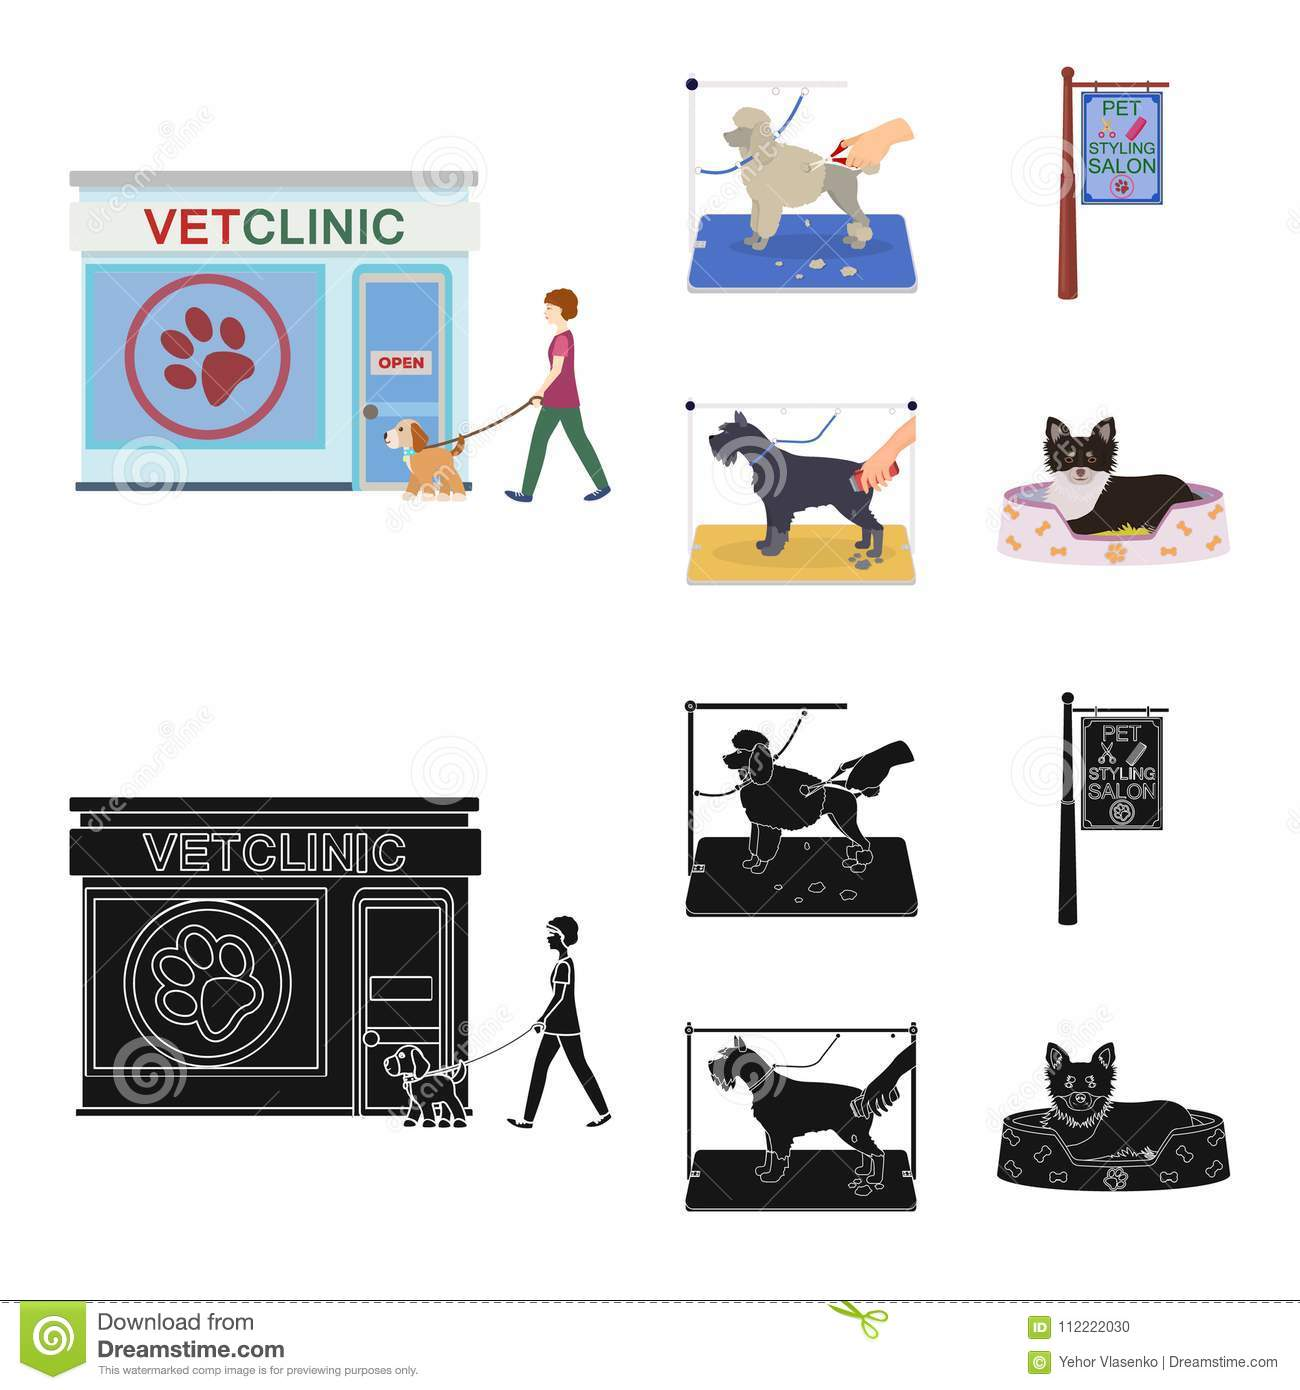 Visiting A Vet Clinic A Signboard Of A Stylish Salon For A Pet A